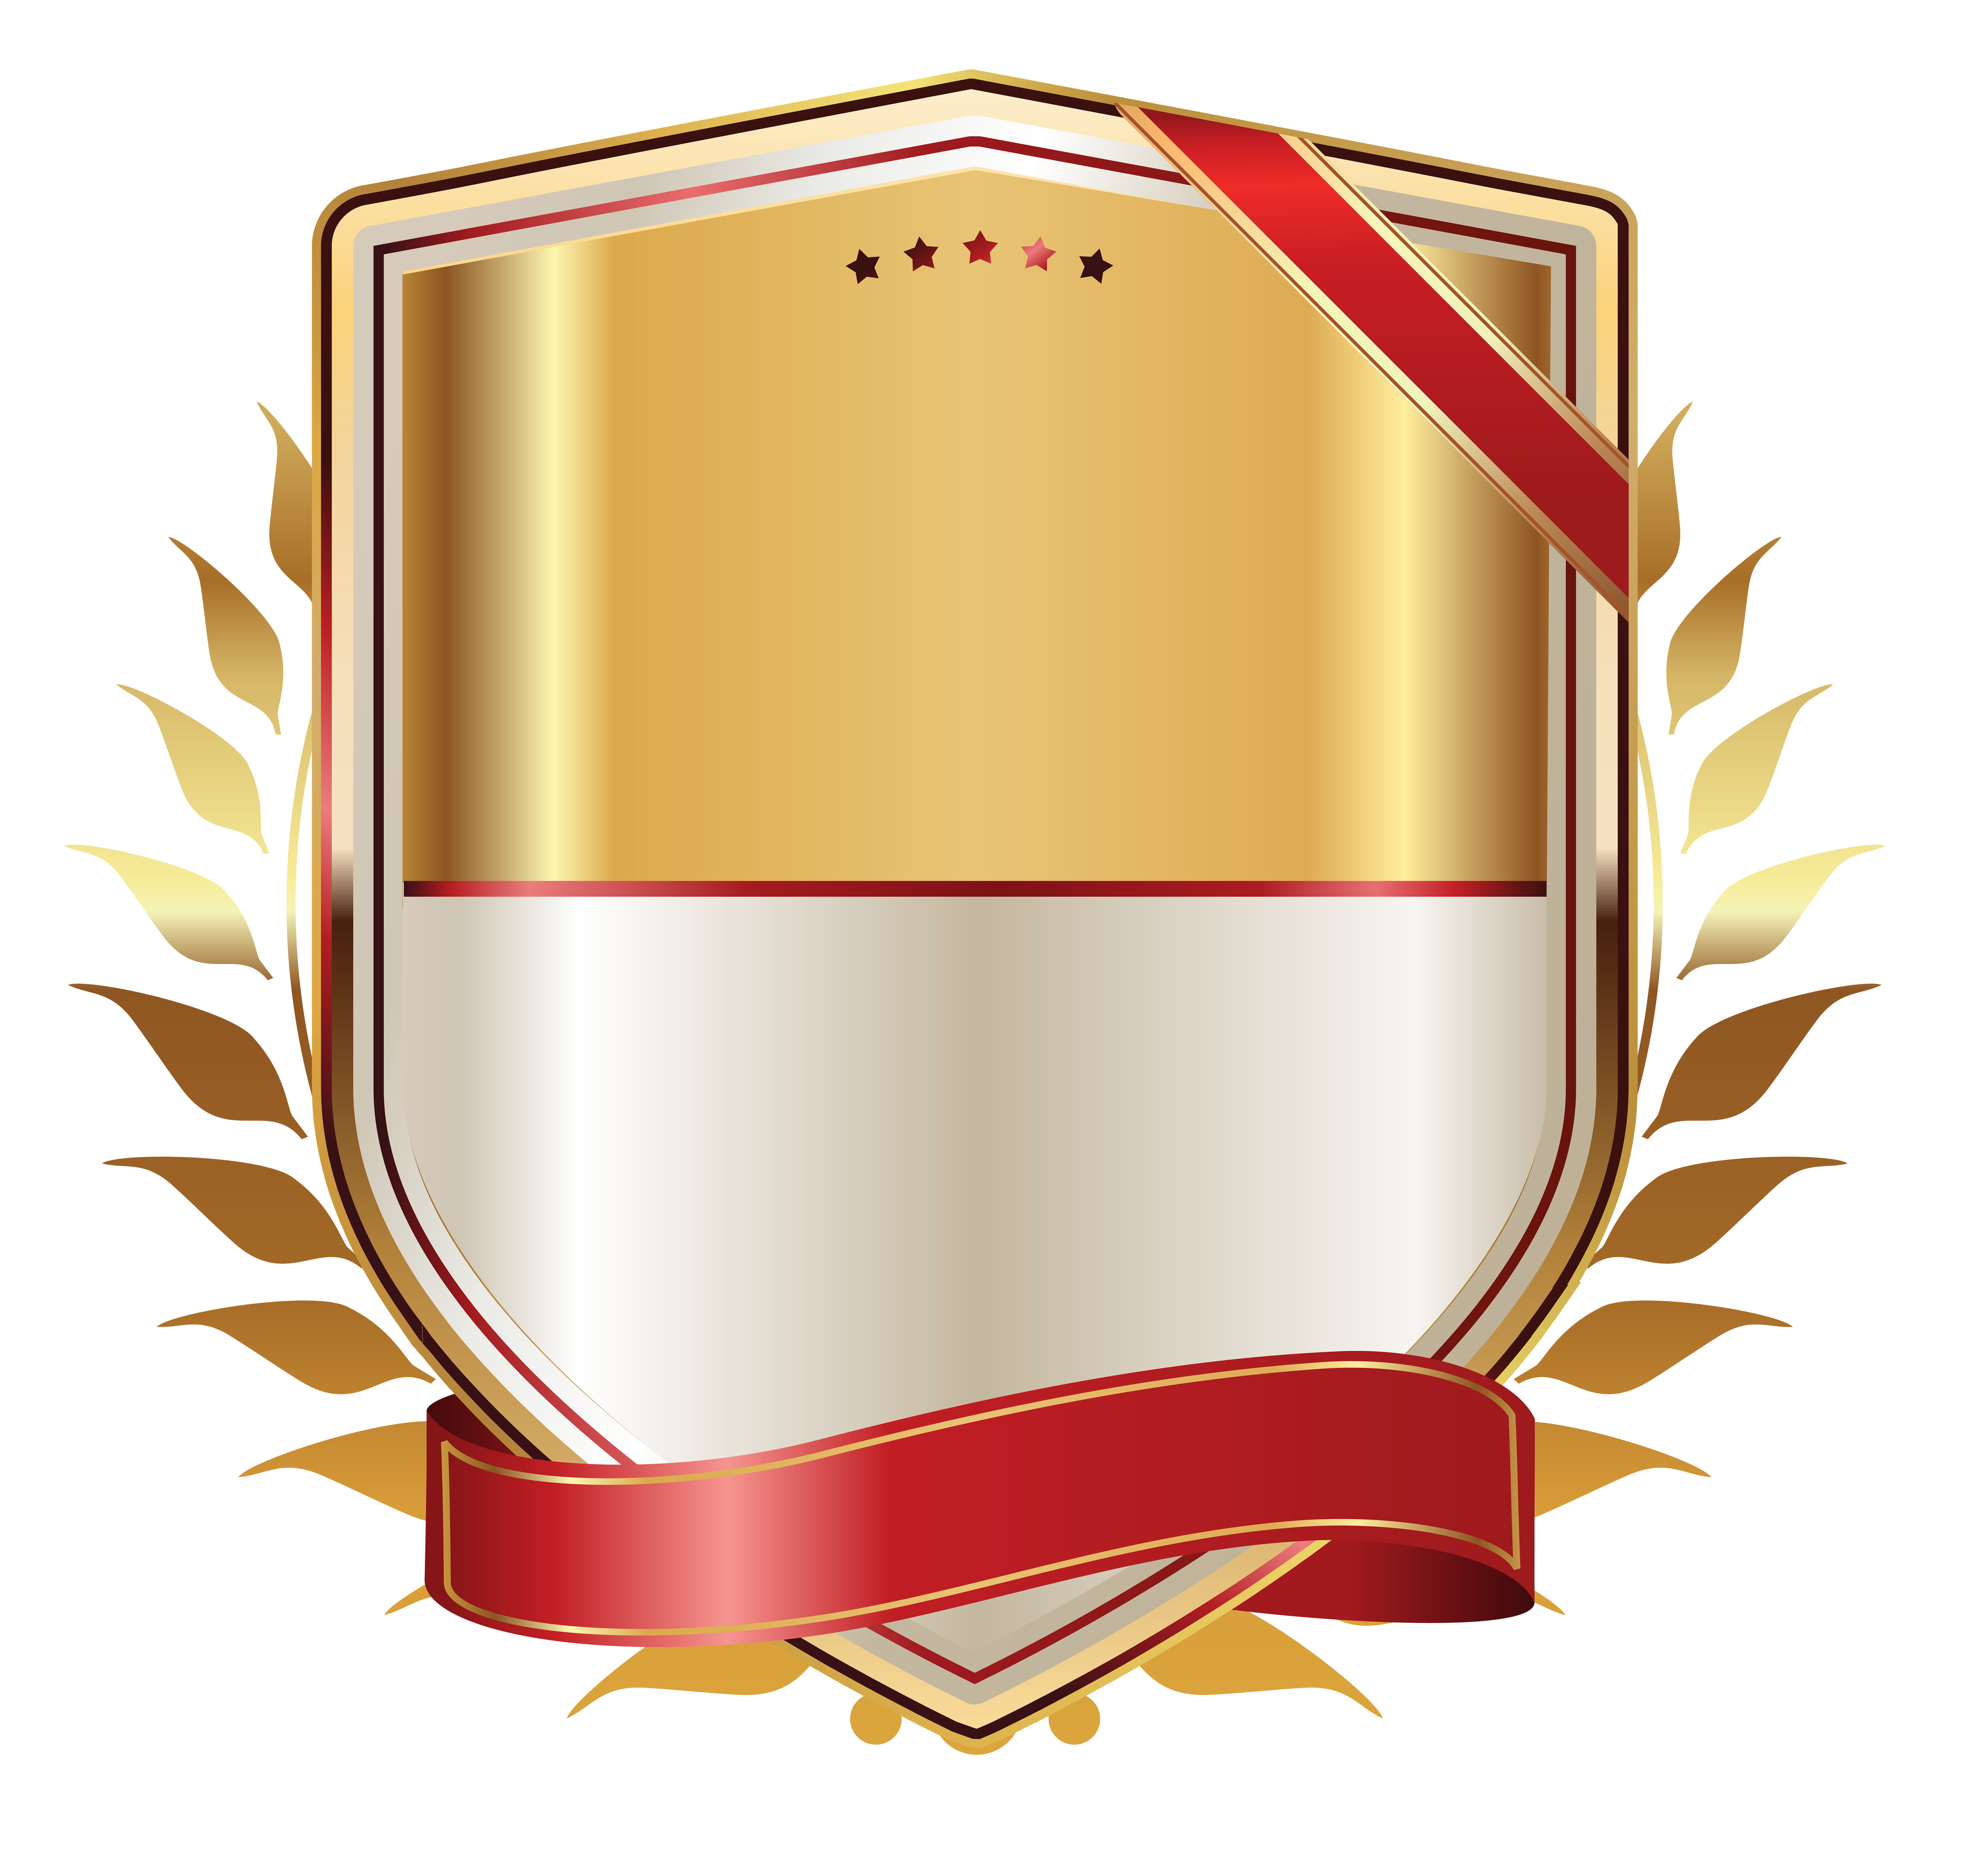 Clipart shield metallic. Golden label with gold